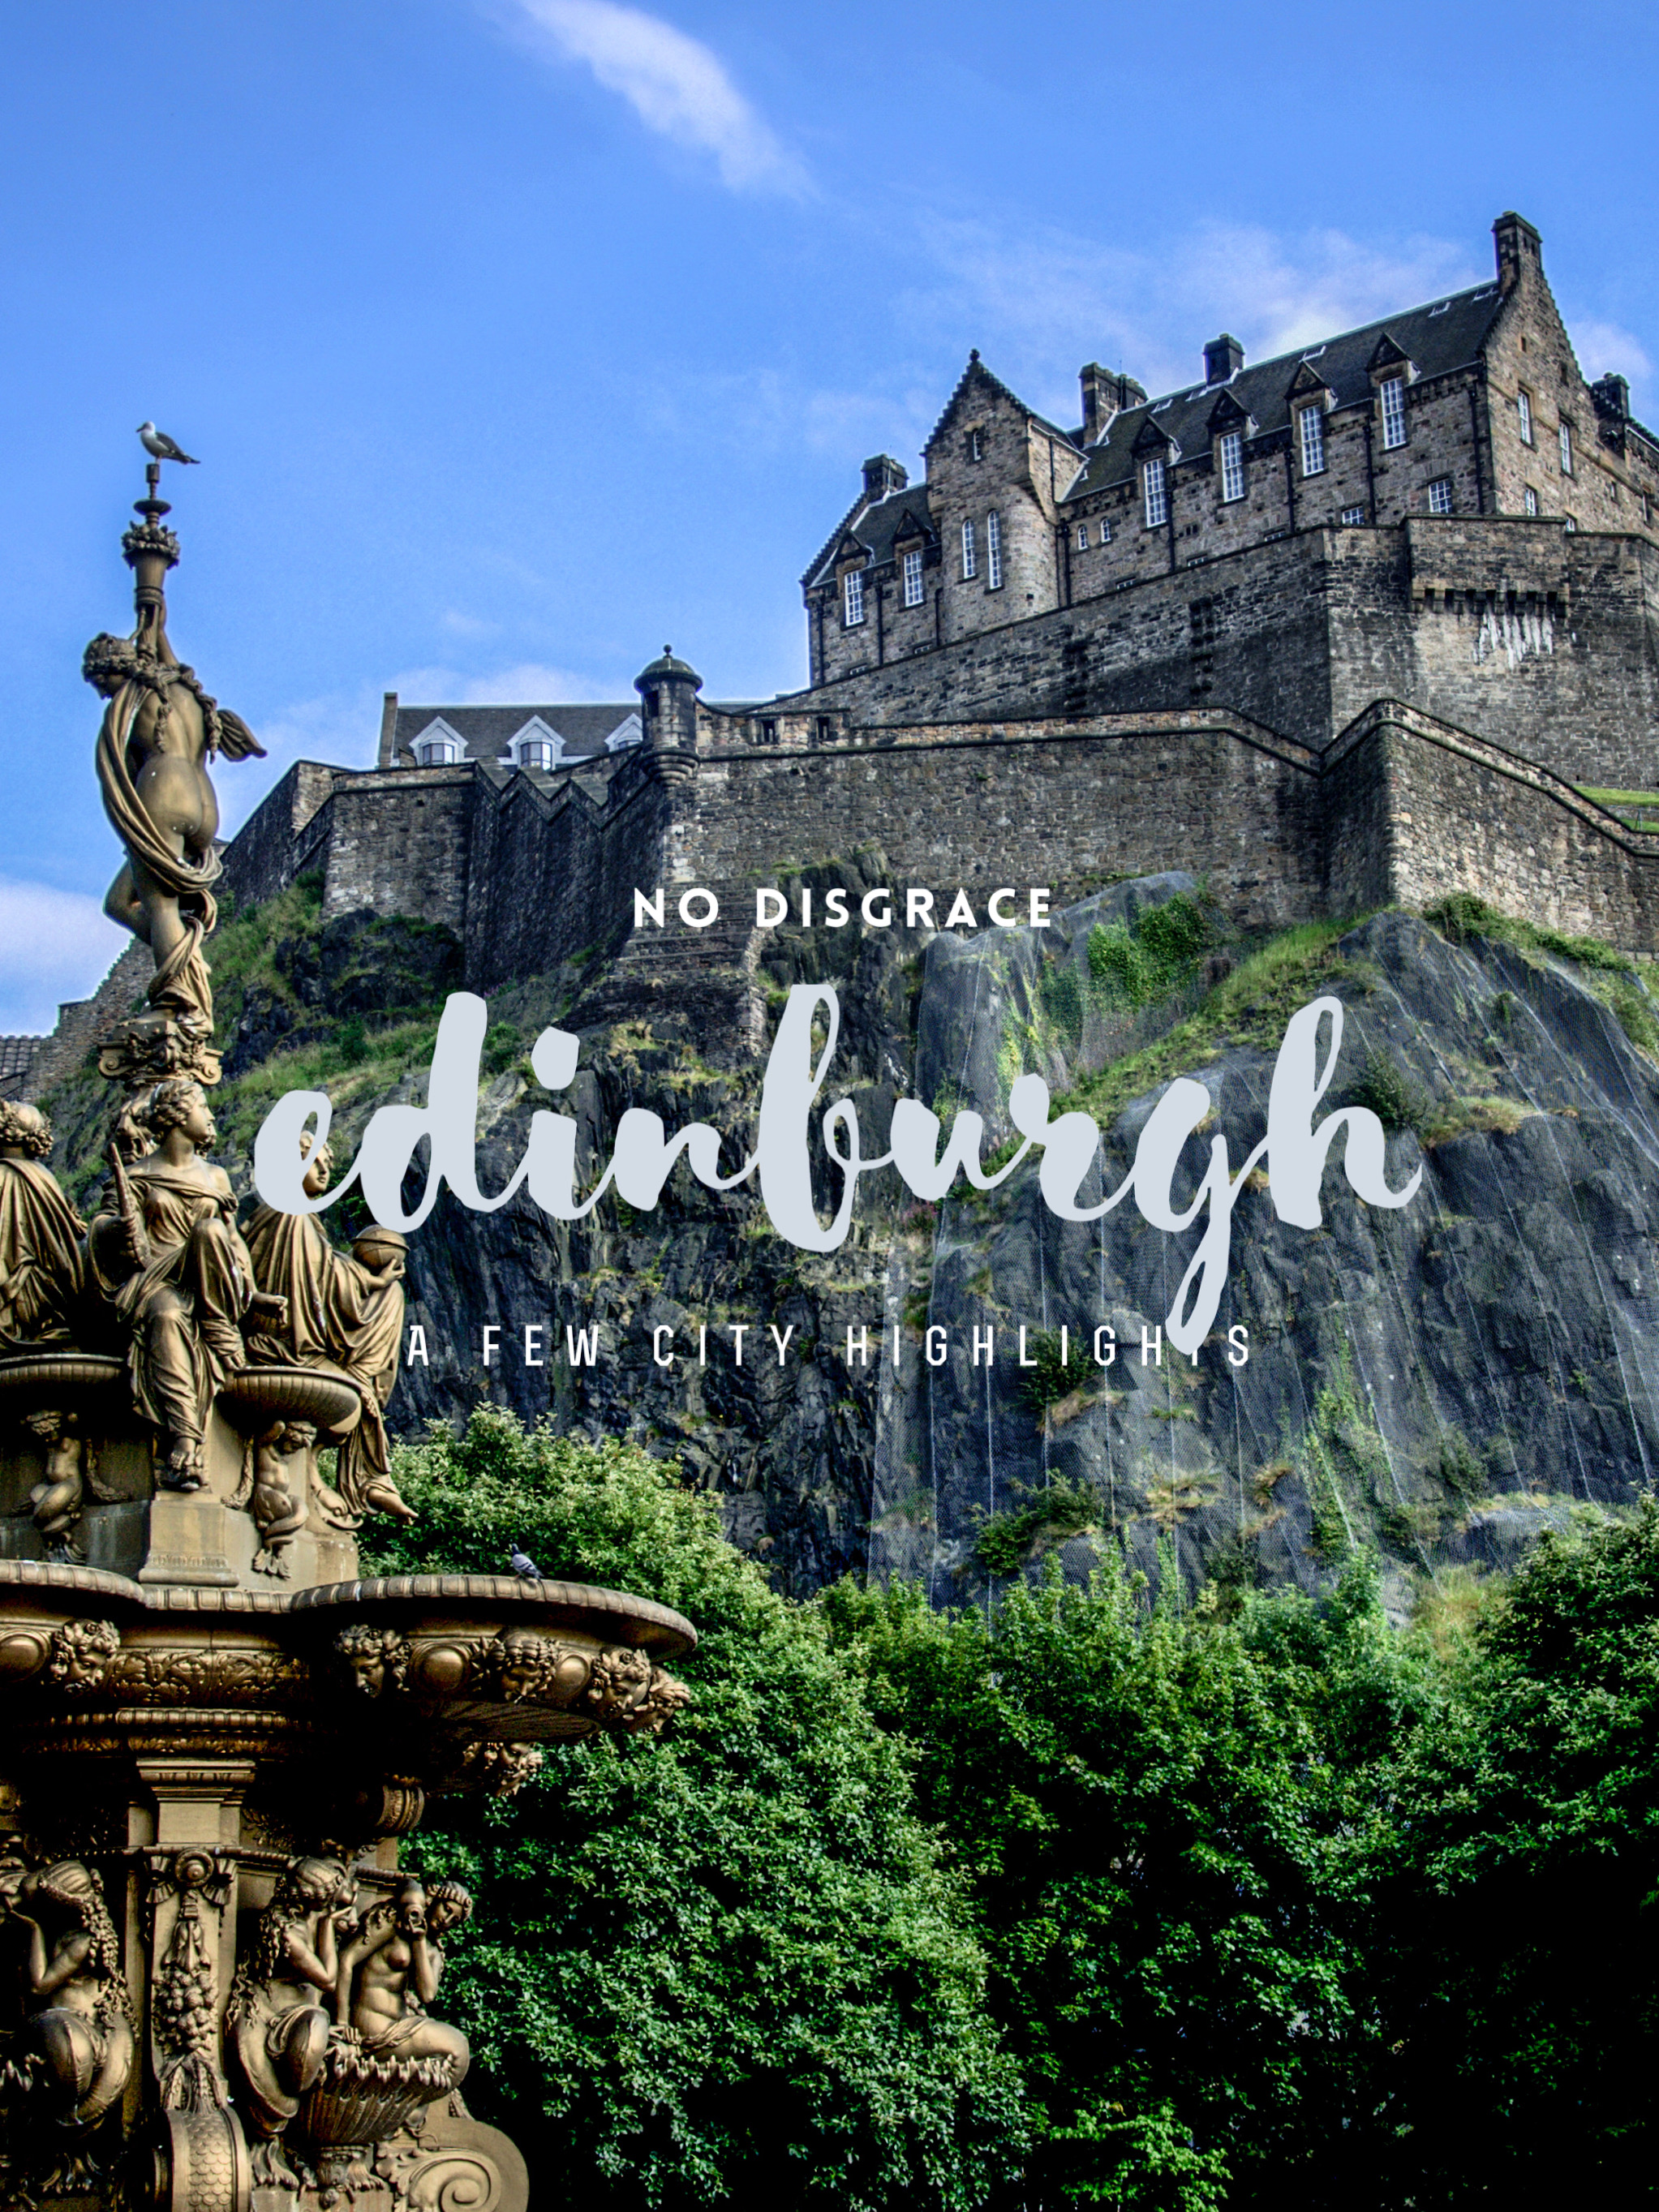 Edinburgh, No Disgrace